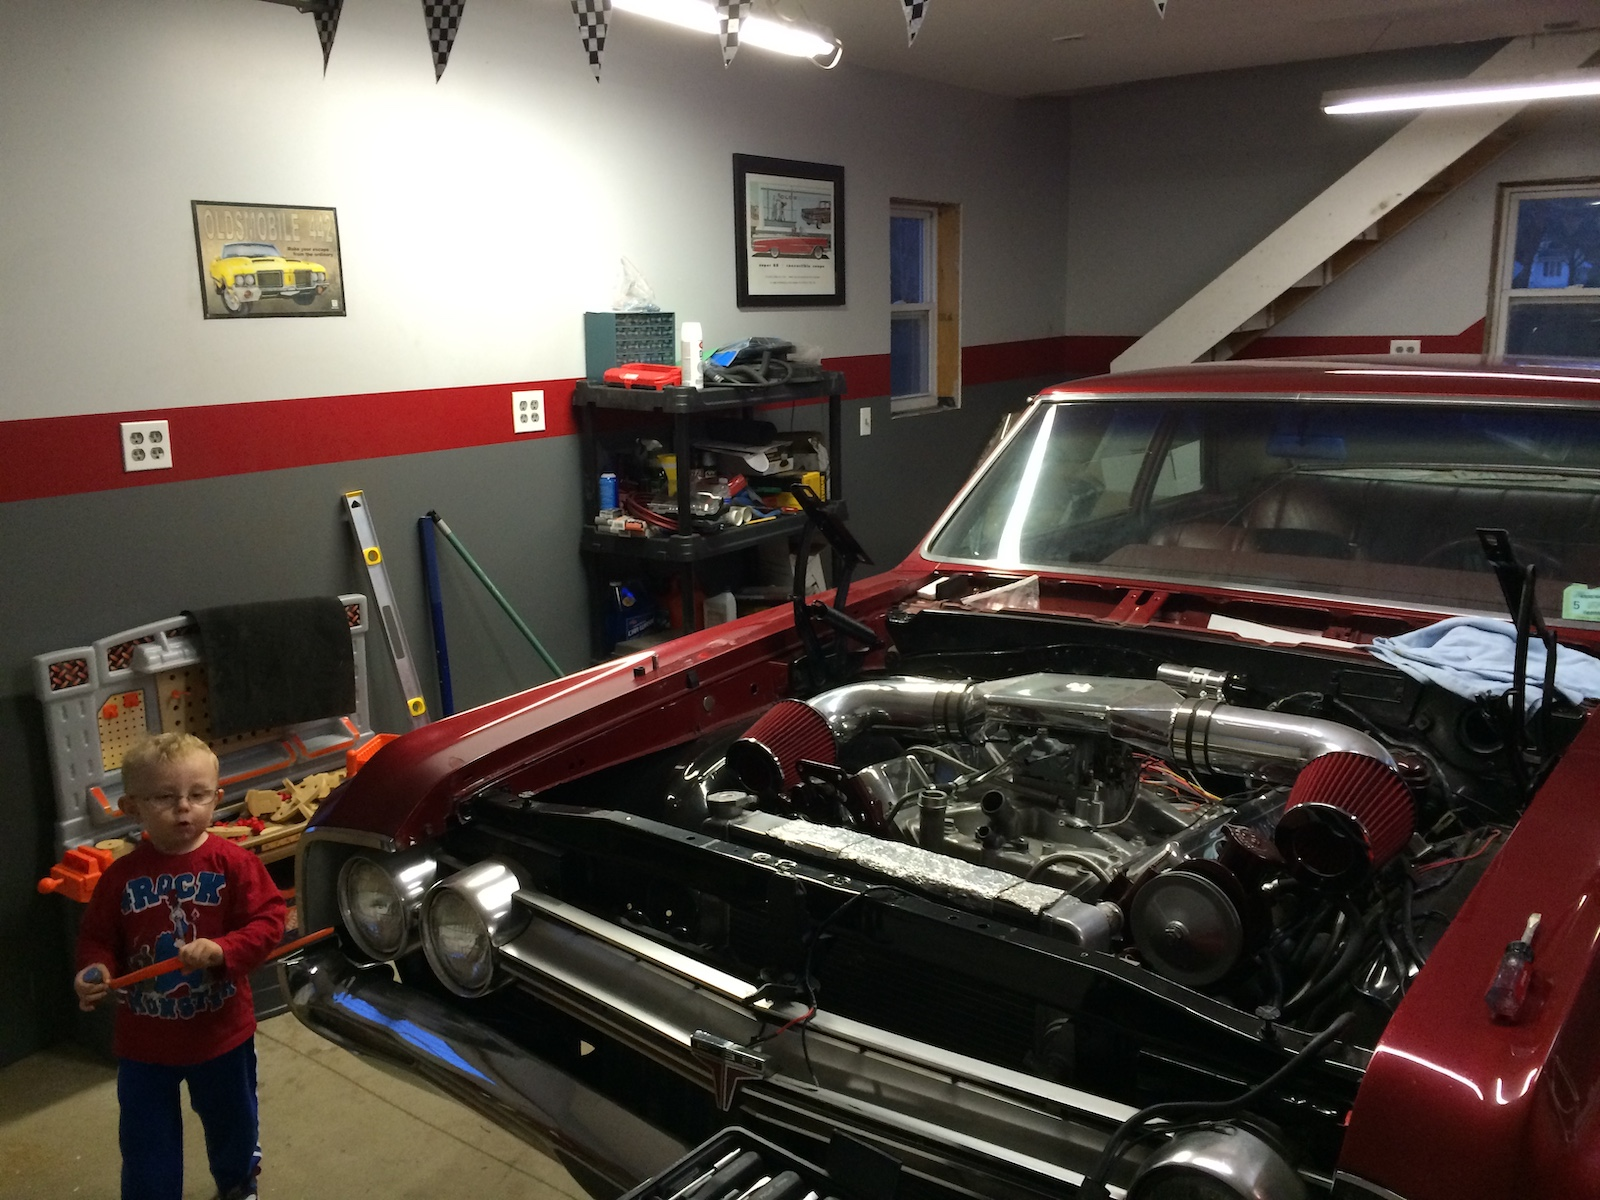 64 oldsmobile f-85 without hood showing engine in garage